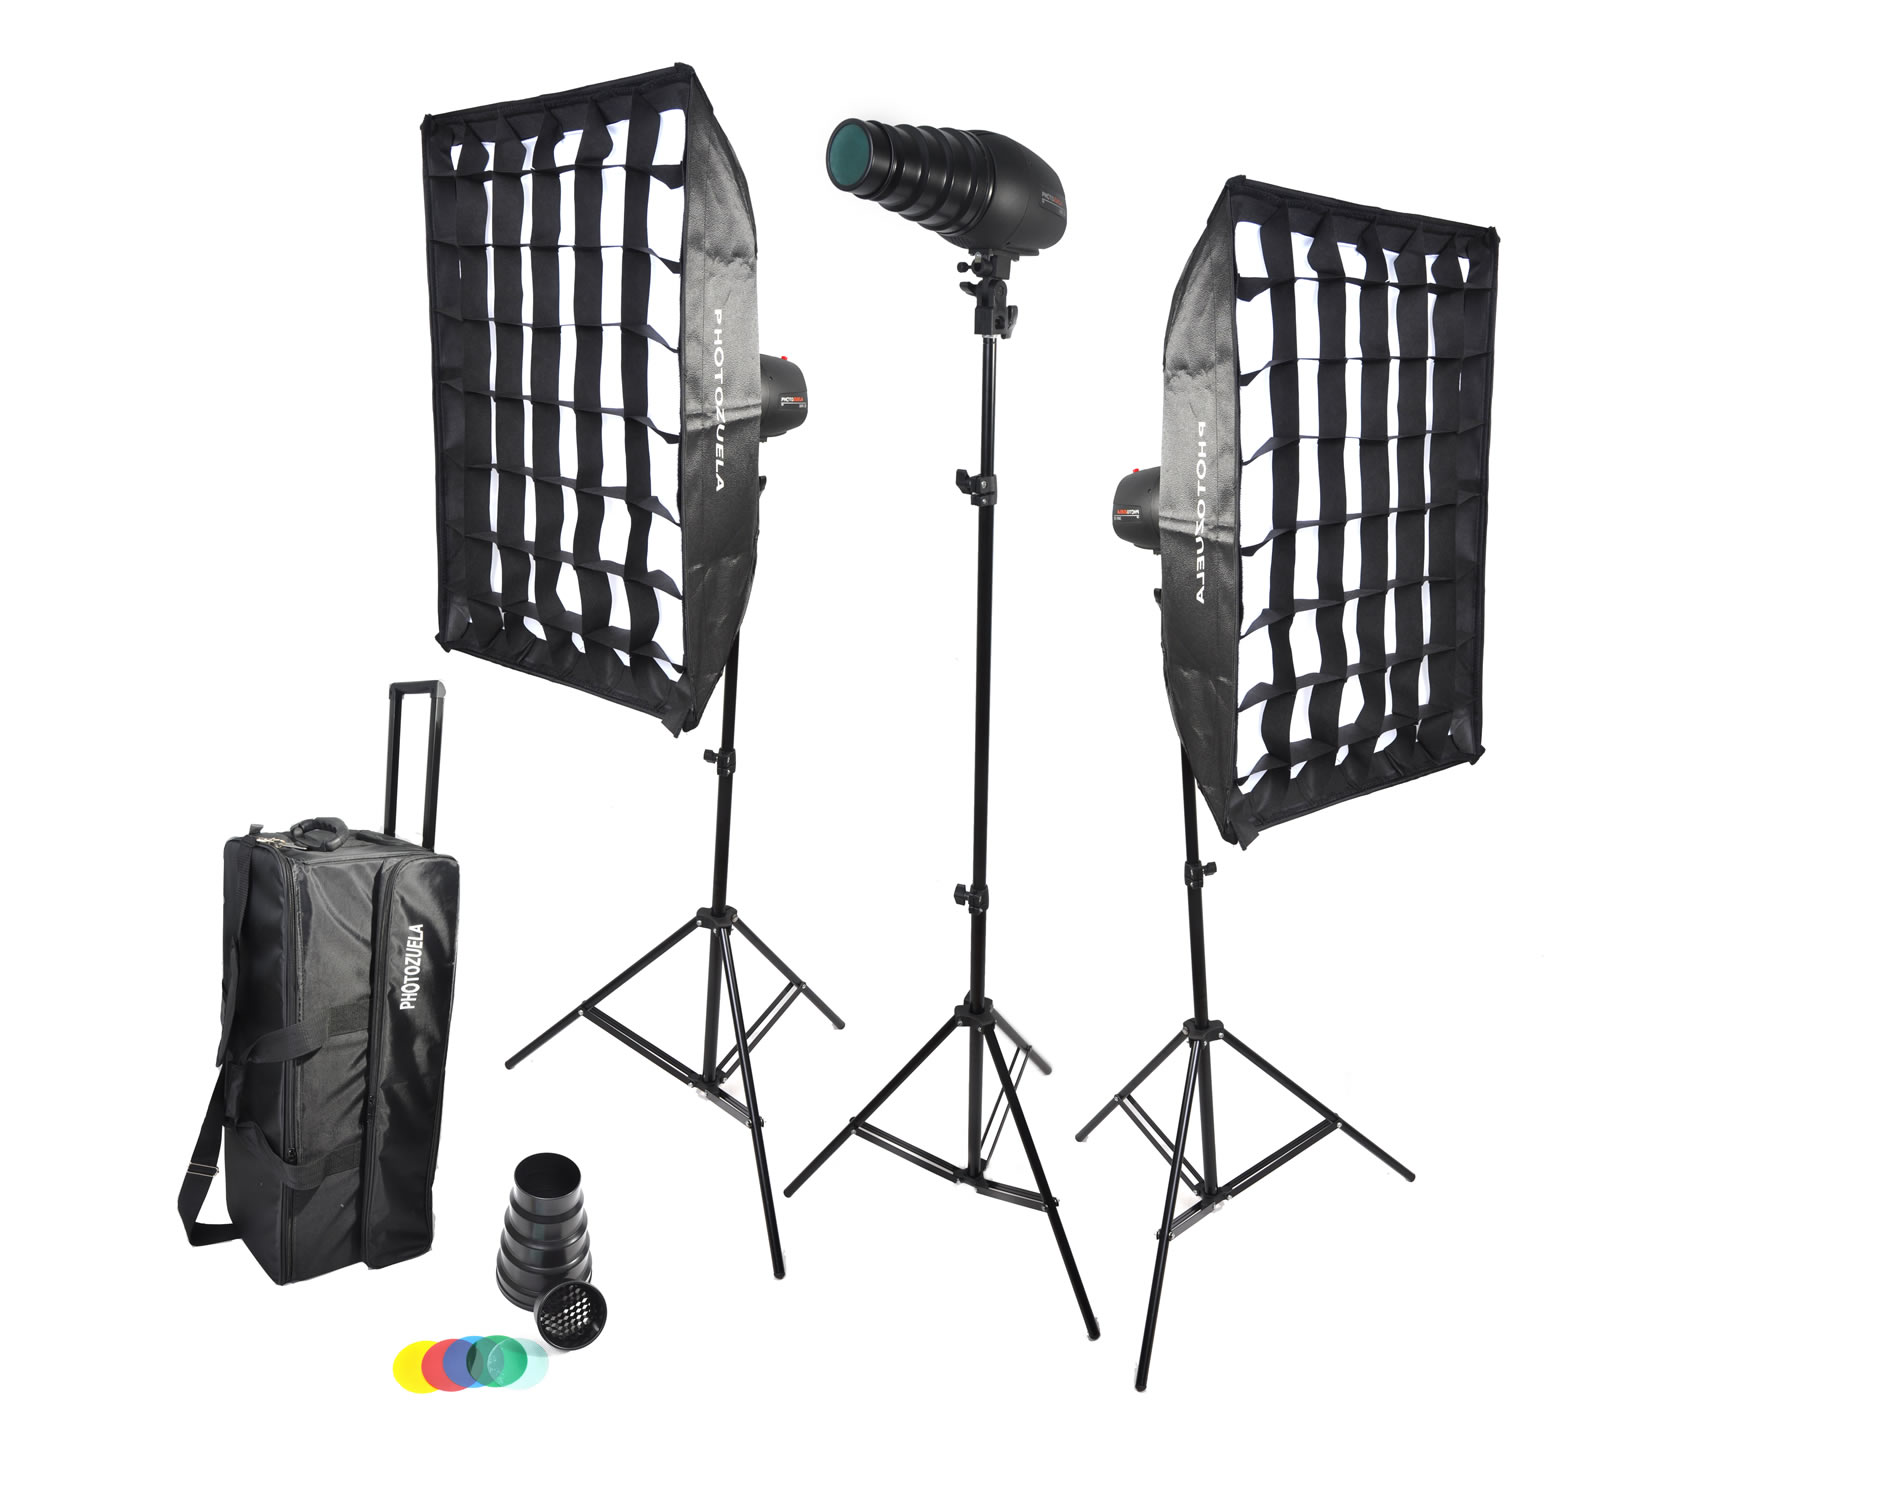 Tampa 180 Studio light flash kit by Photozuela